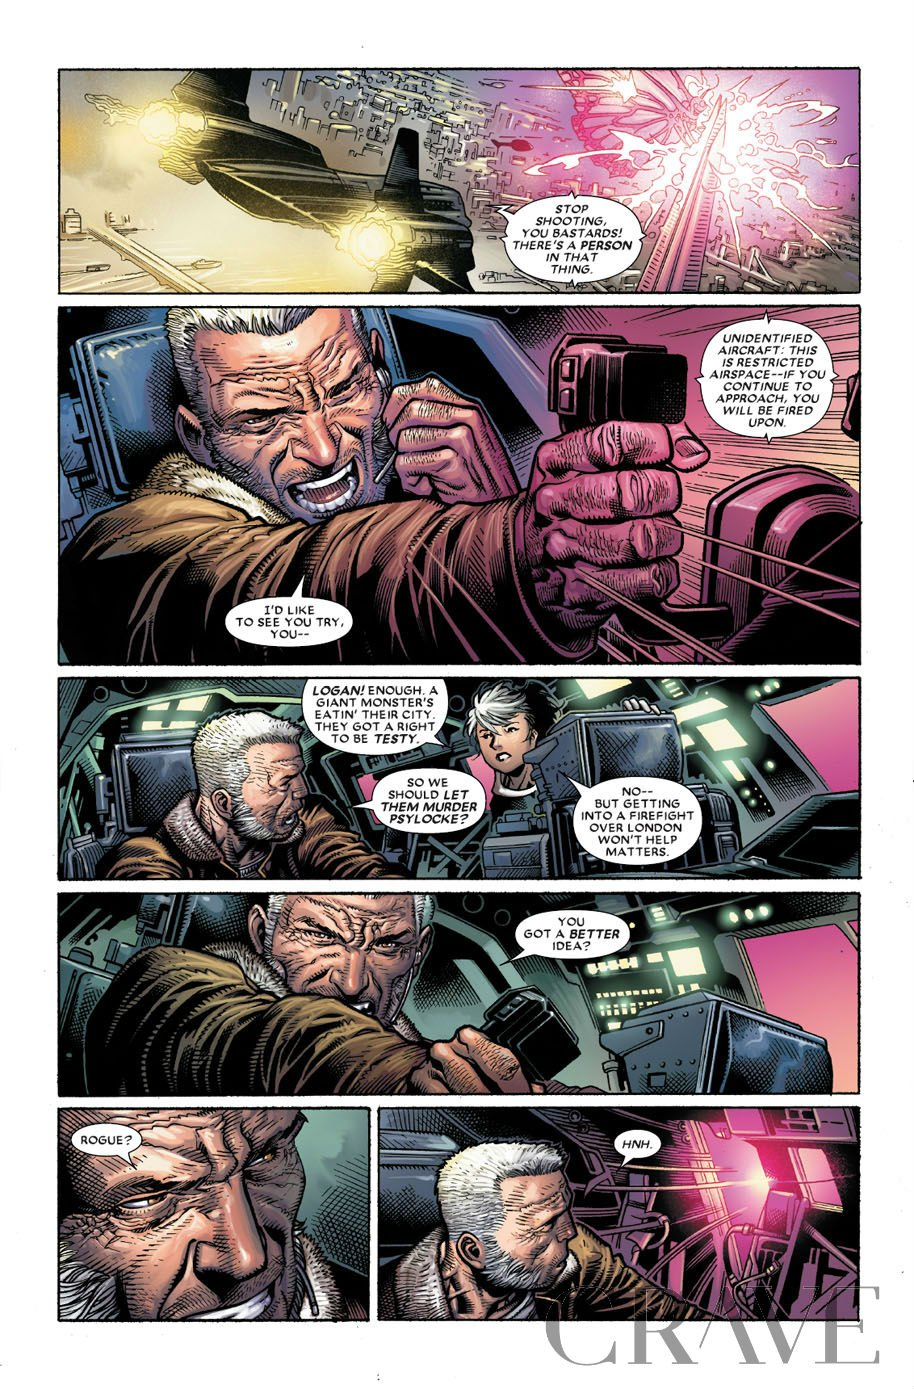 Astonishing X-Men 1 preview page 3